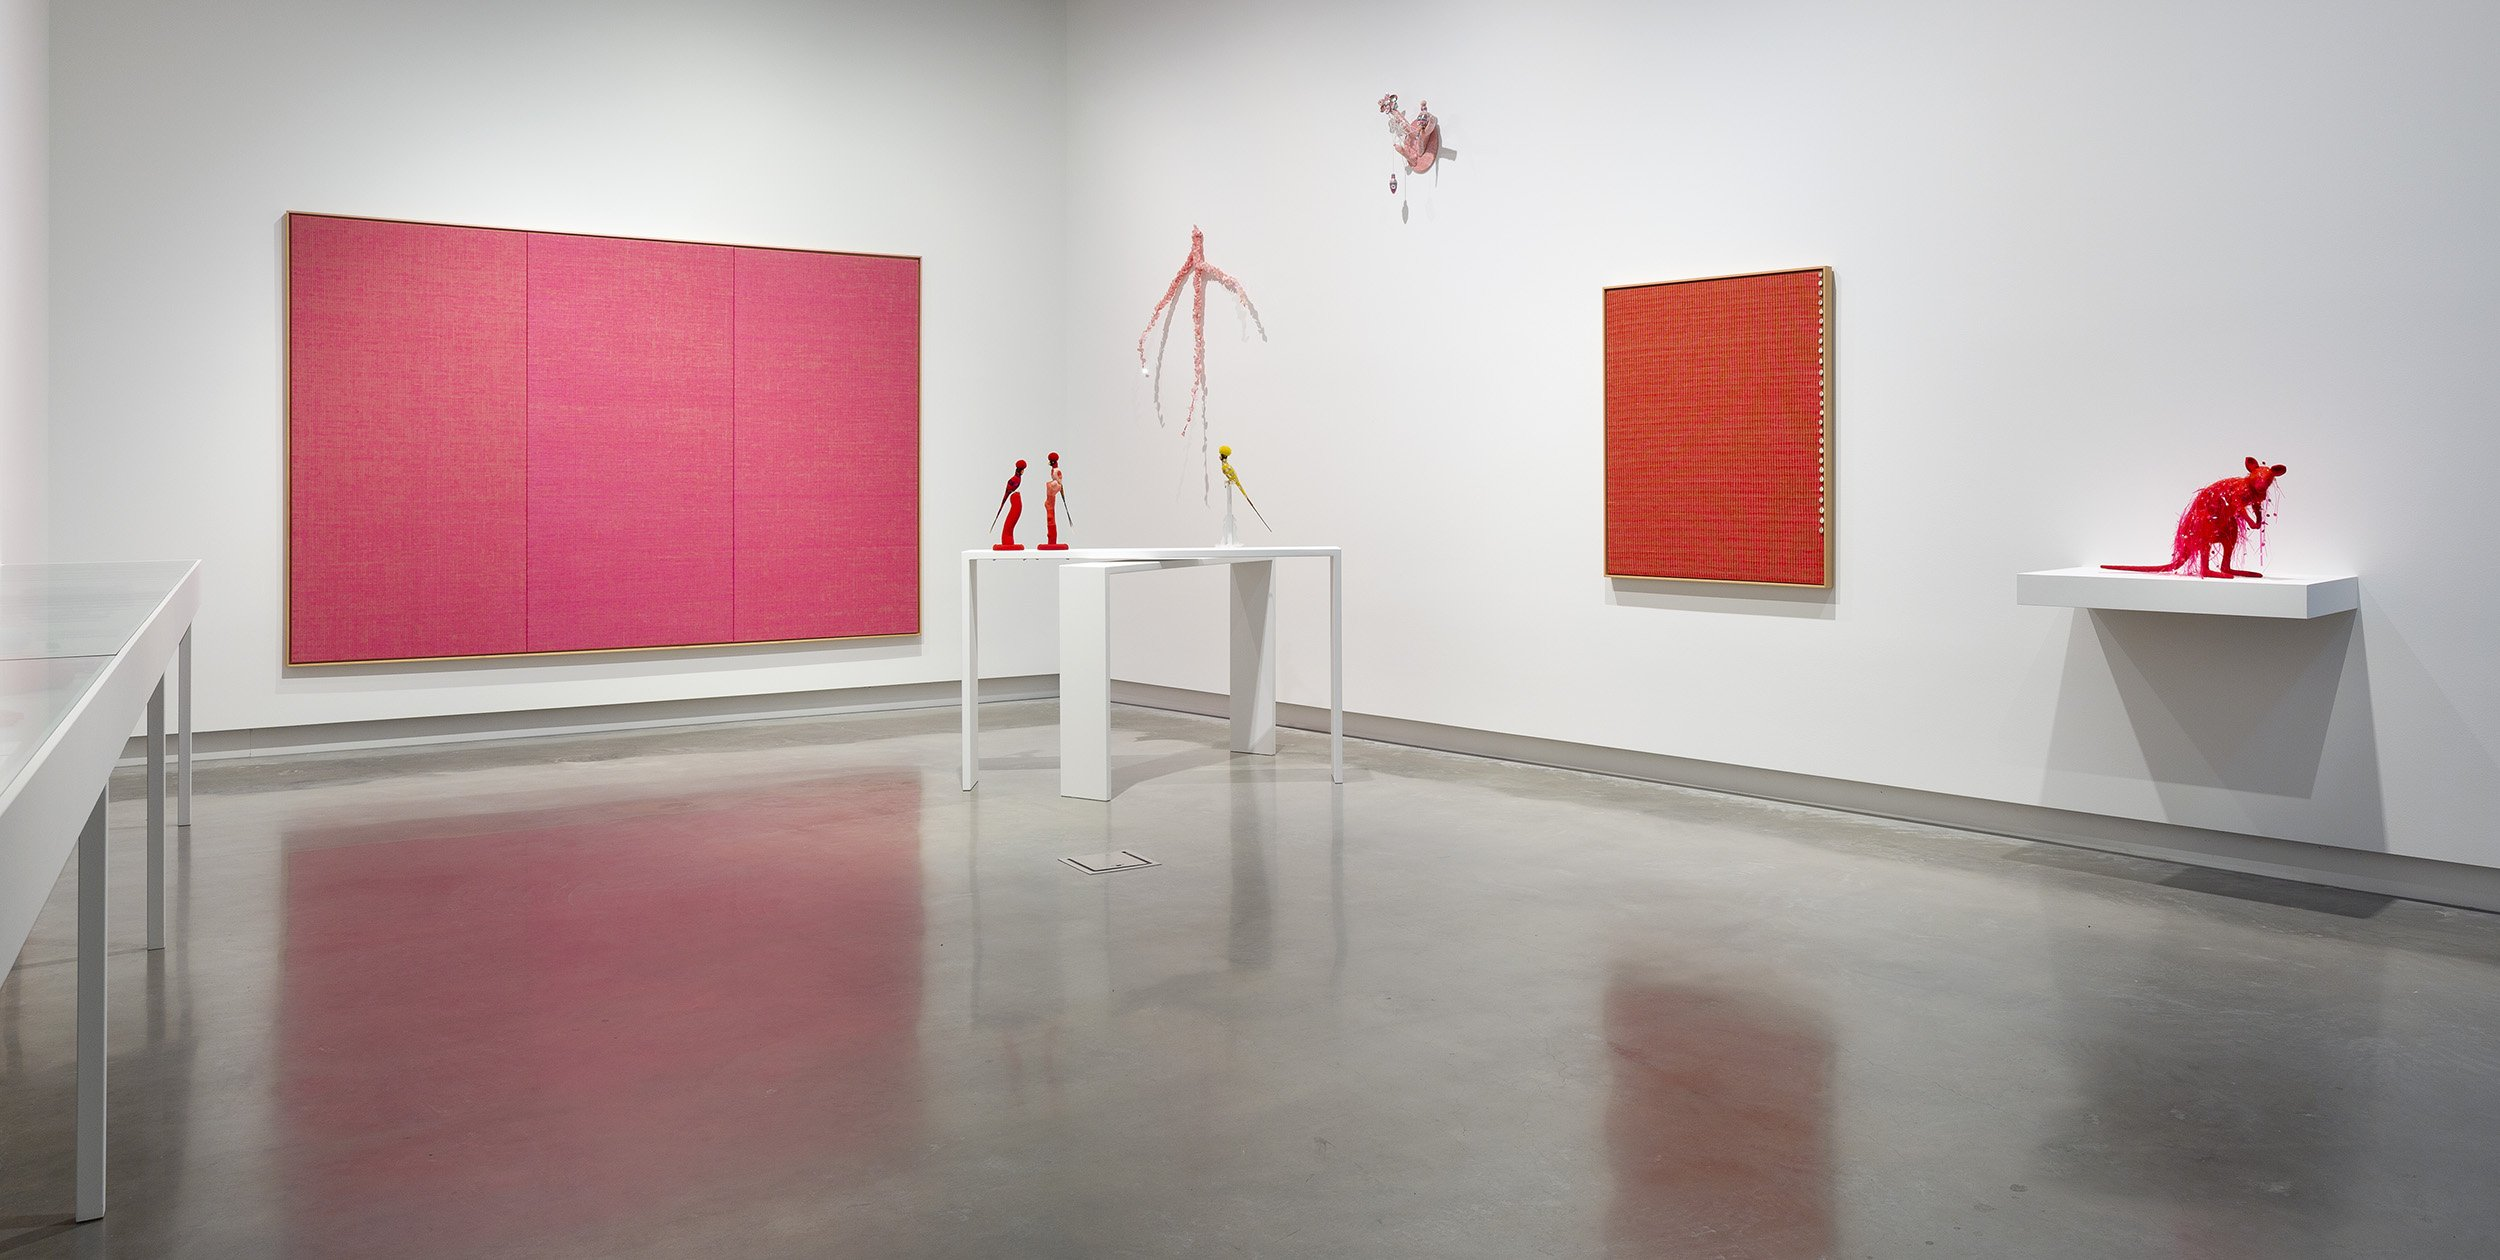 Perspective is of a corner in the gallery. Two large weavings are hung on the wall, one pink and one orange. In front, on long white plinths, sit 3 sculptures of taxidermy birds with colourful crocheted coverings.